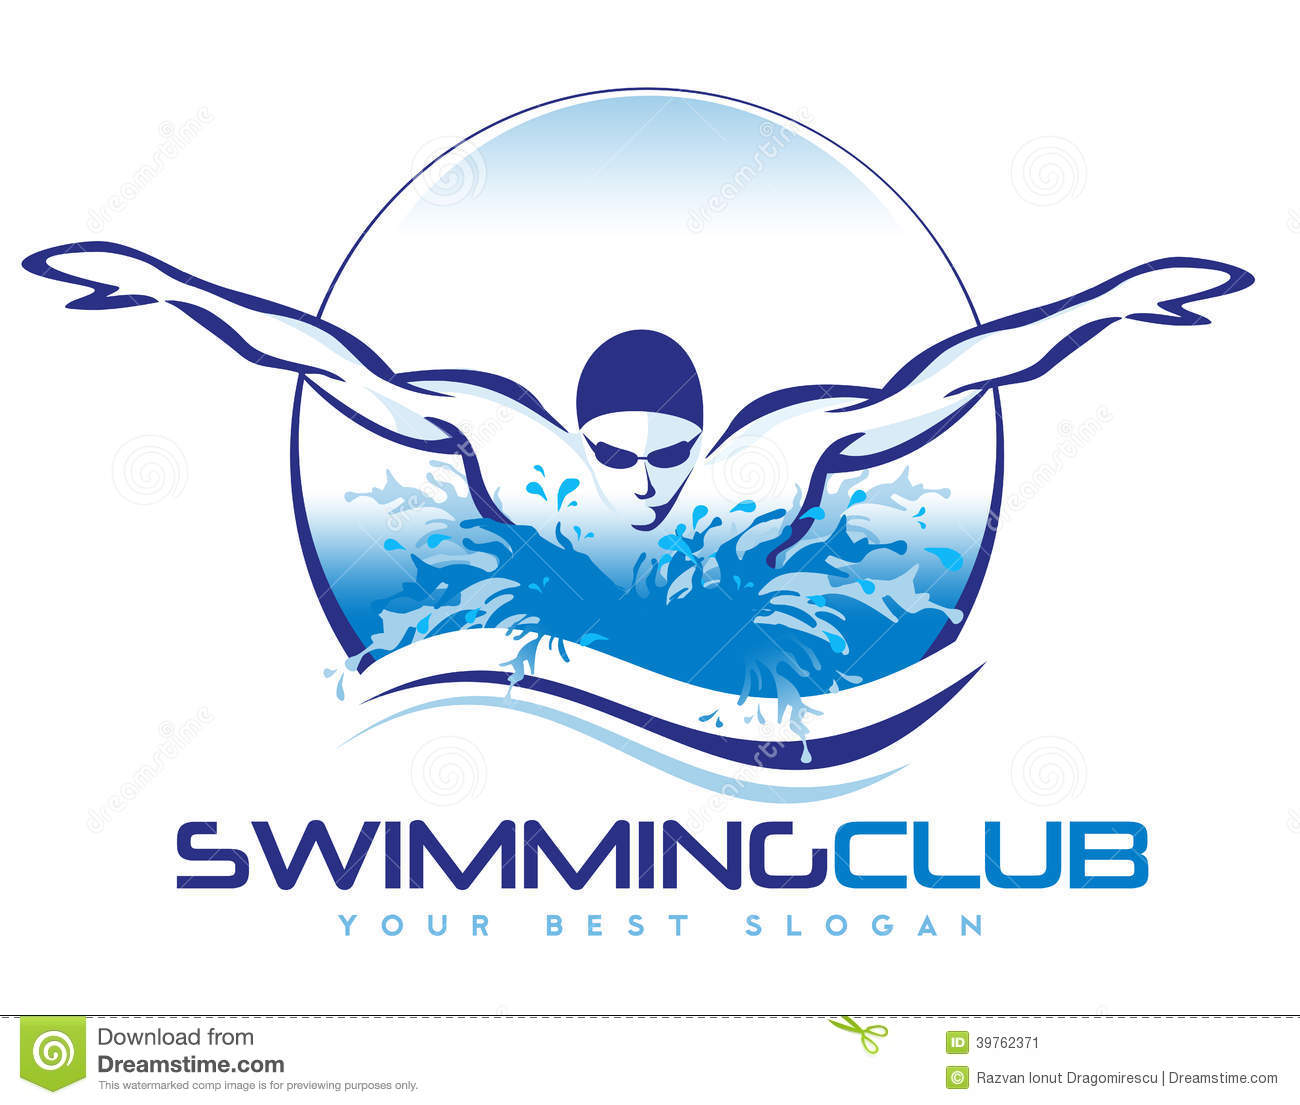 Swimming logo stock illustration image 39762371 - Swimming pool logo design ...